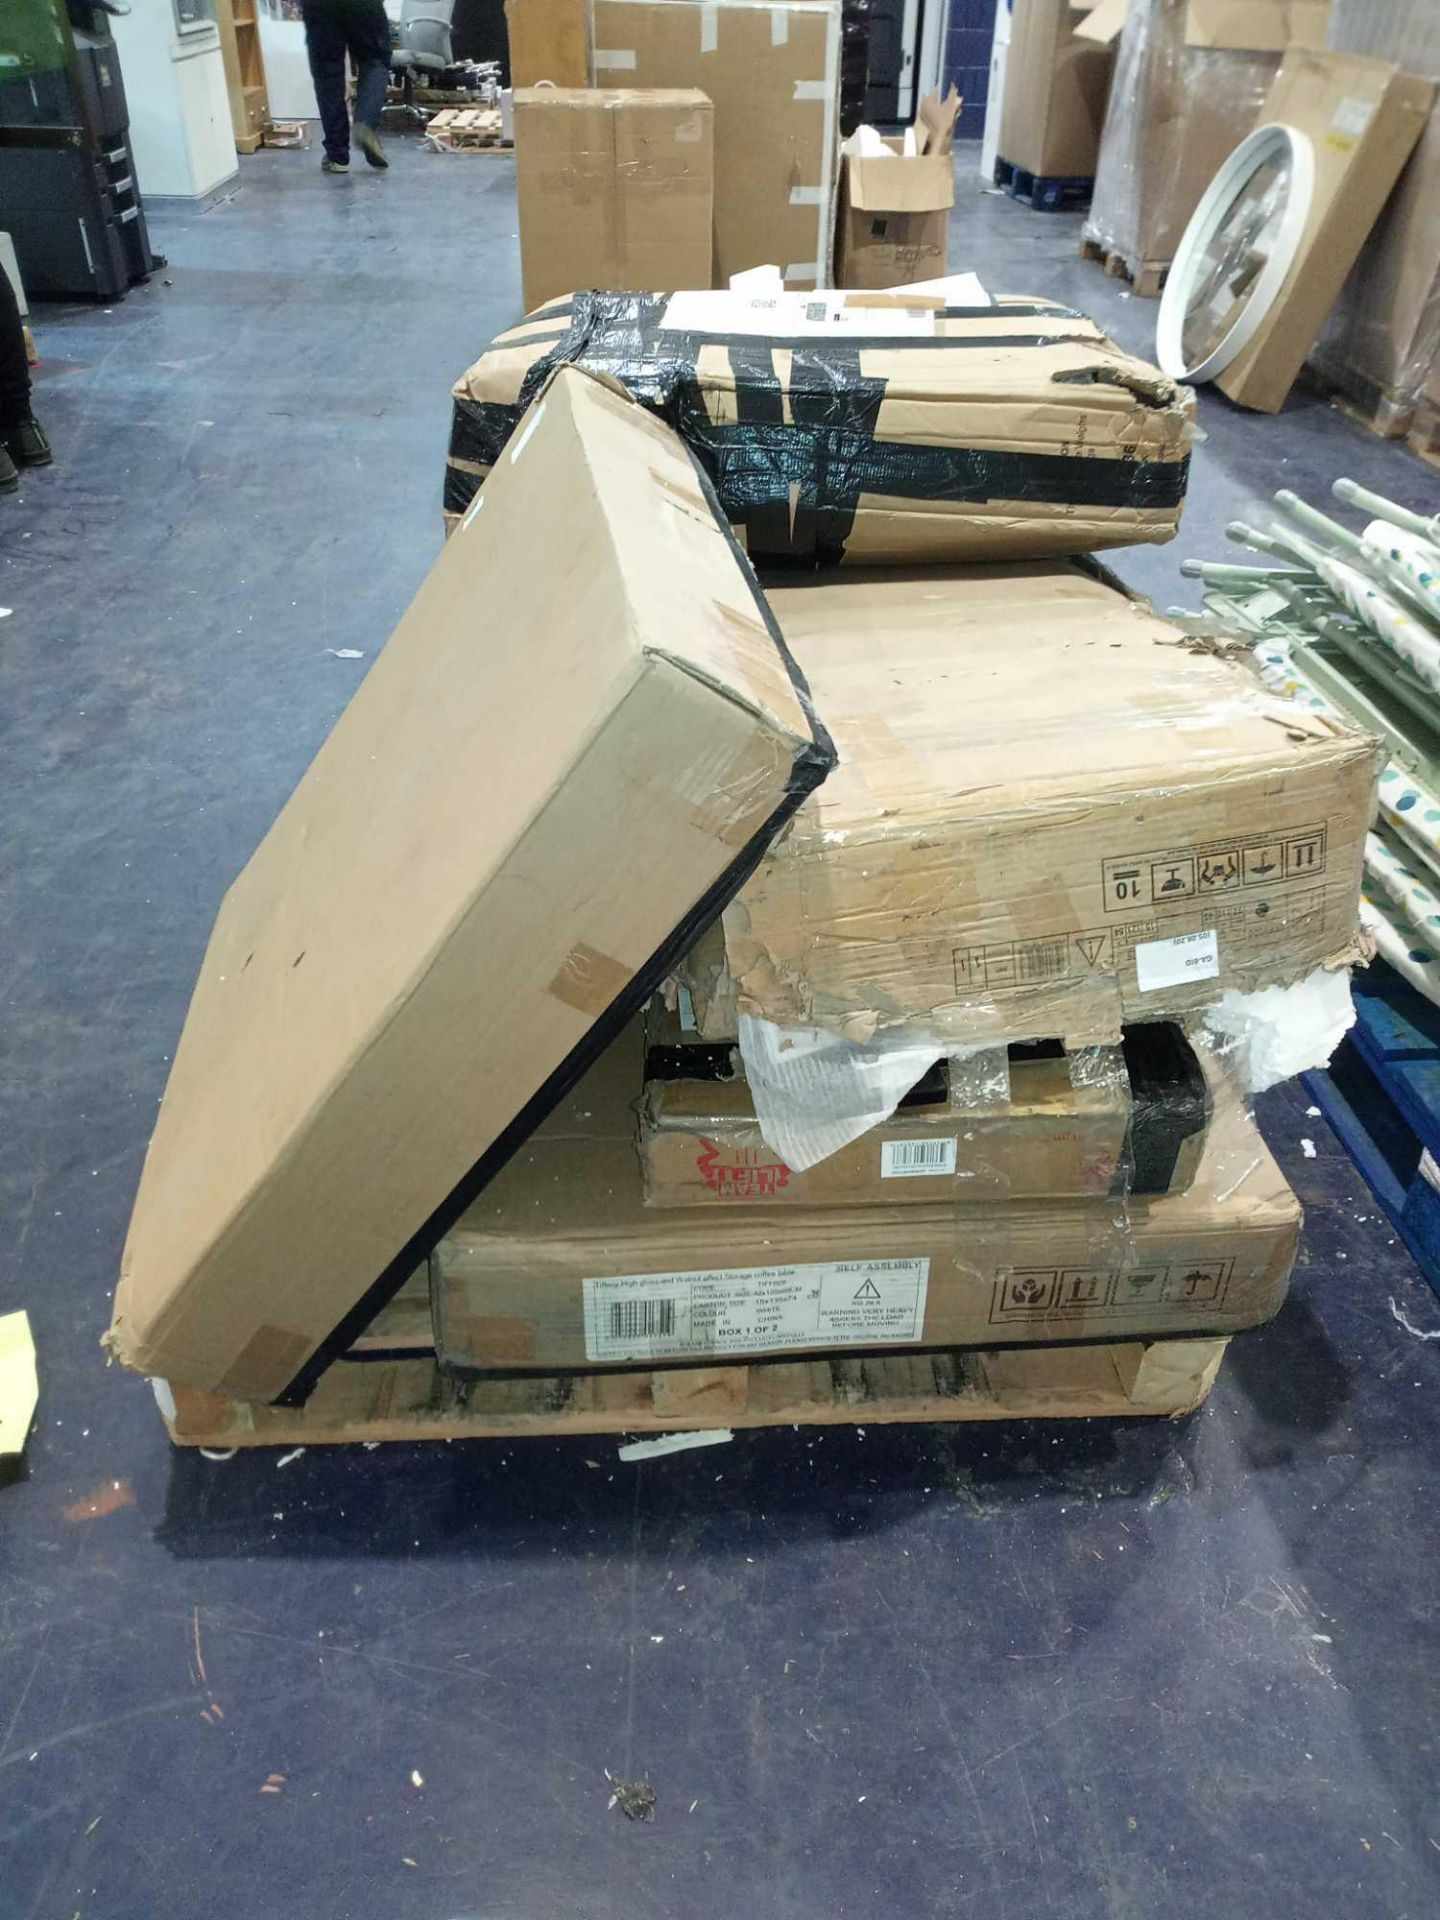 Pallet To Contain 8 Assorted Boxed Flat Pack Furniture Part Lots (Appraisals Available On - Image 2 of 2